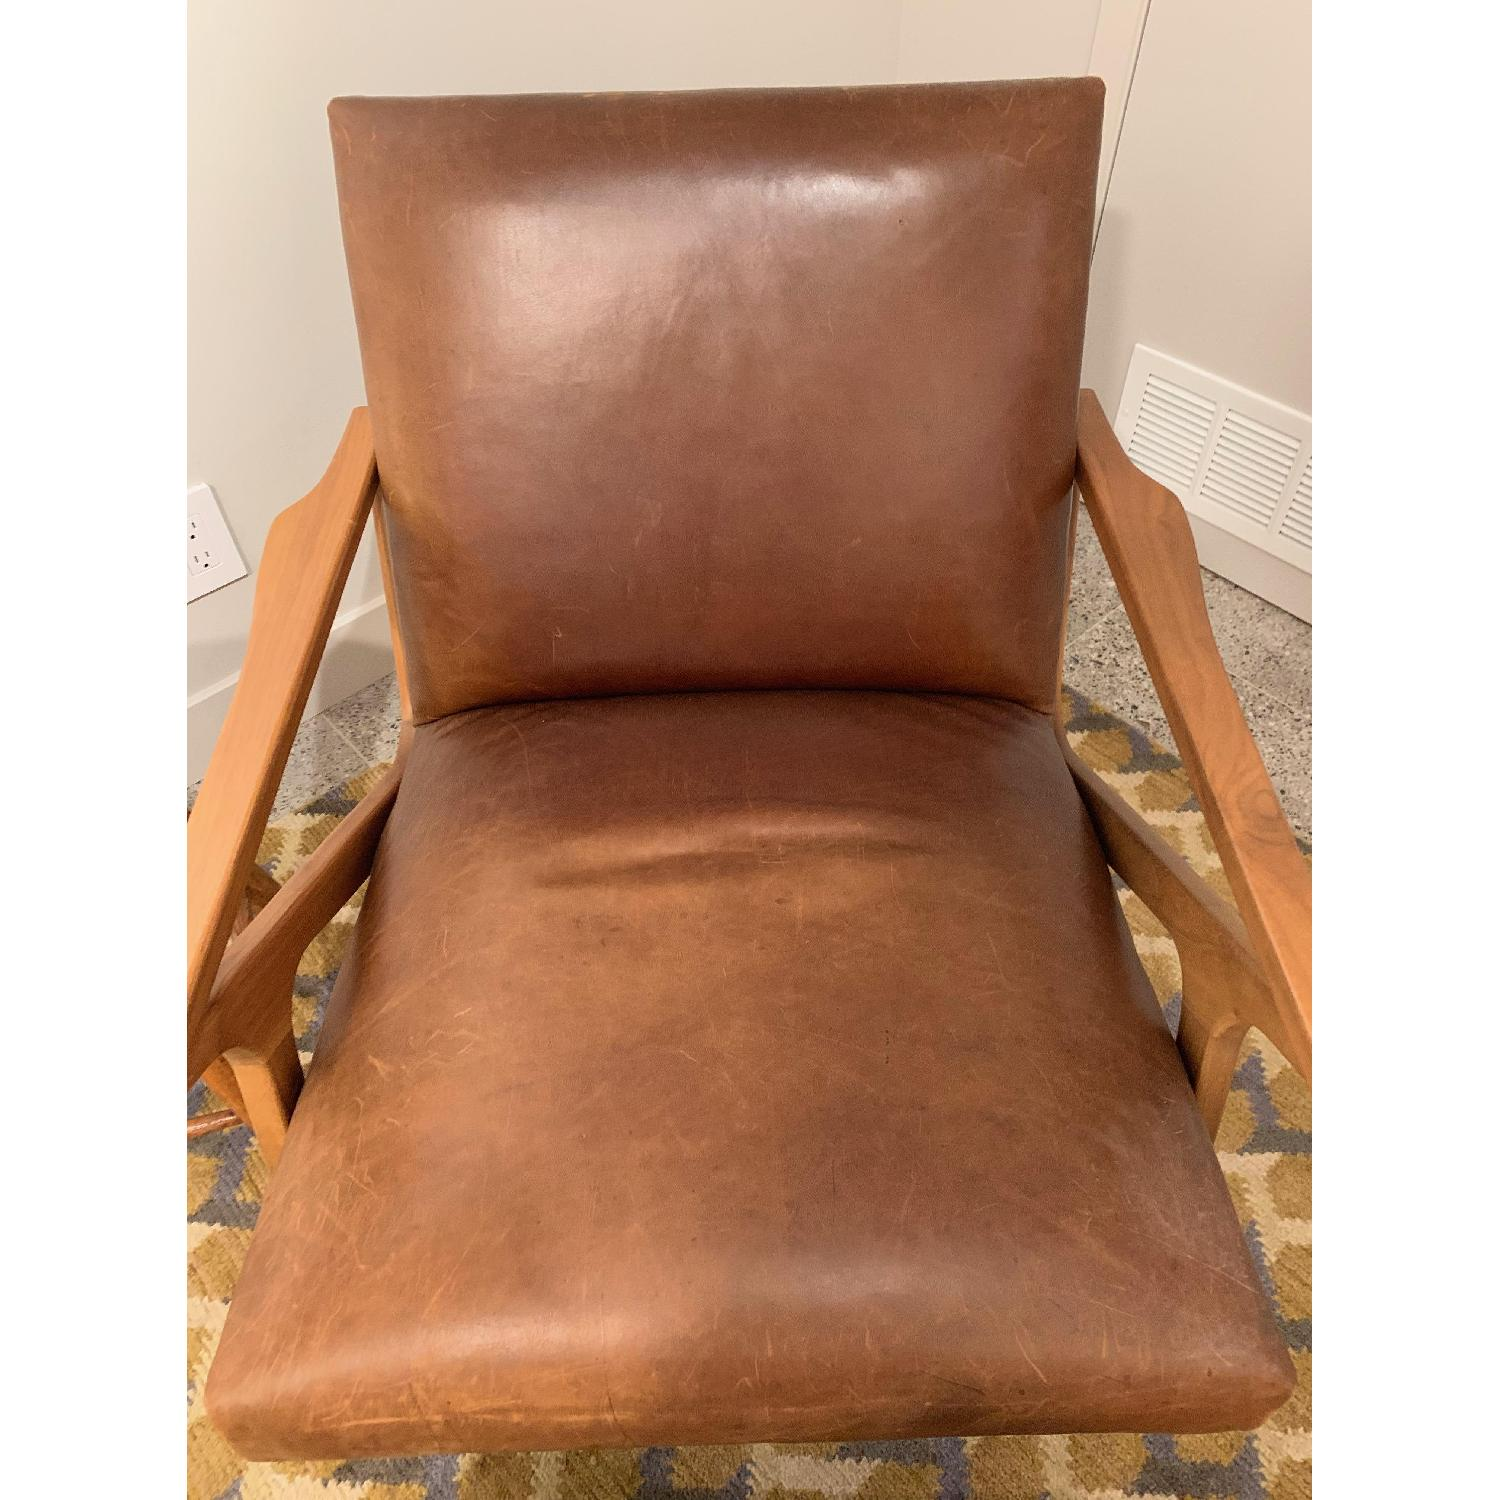 Crate & Barrel Cavett Leather Chair & Ottoman - image-5